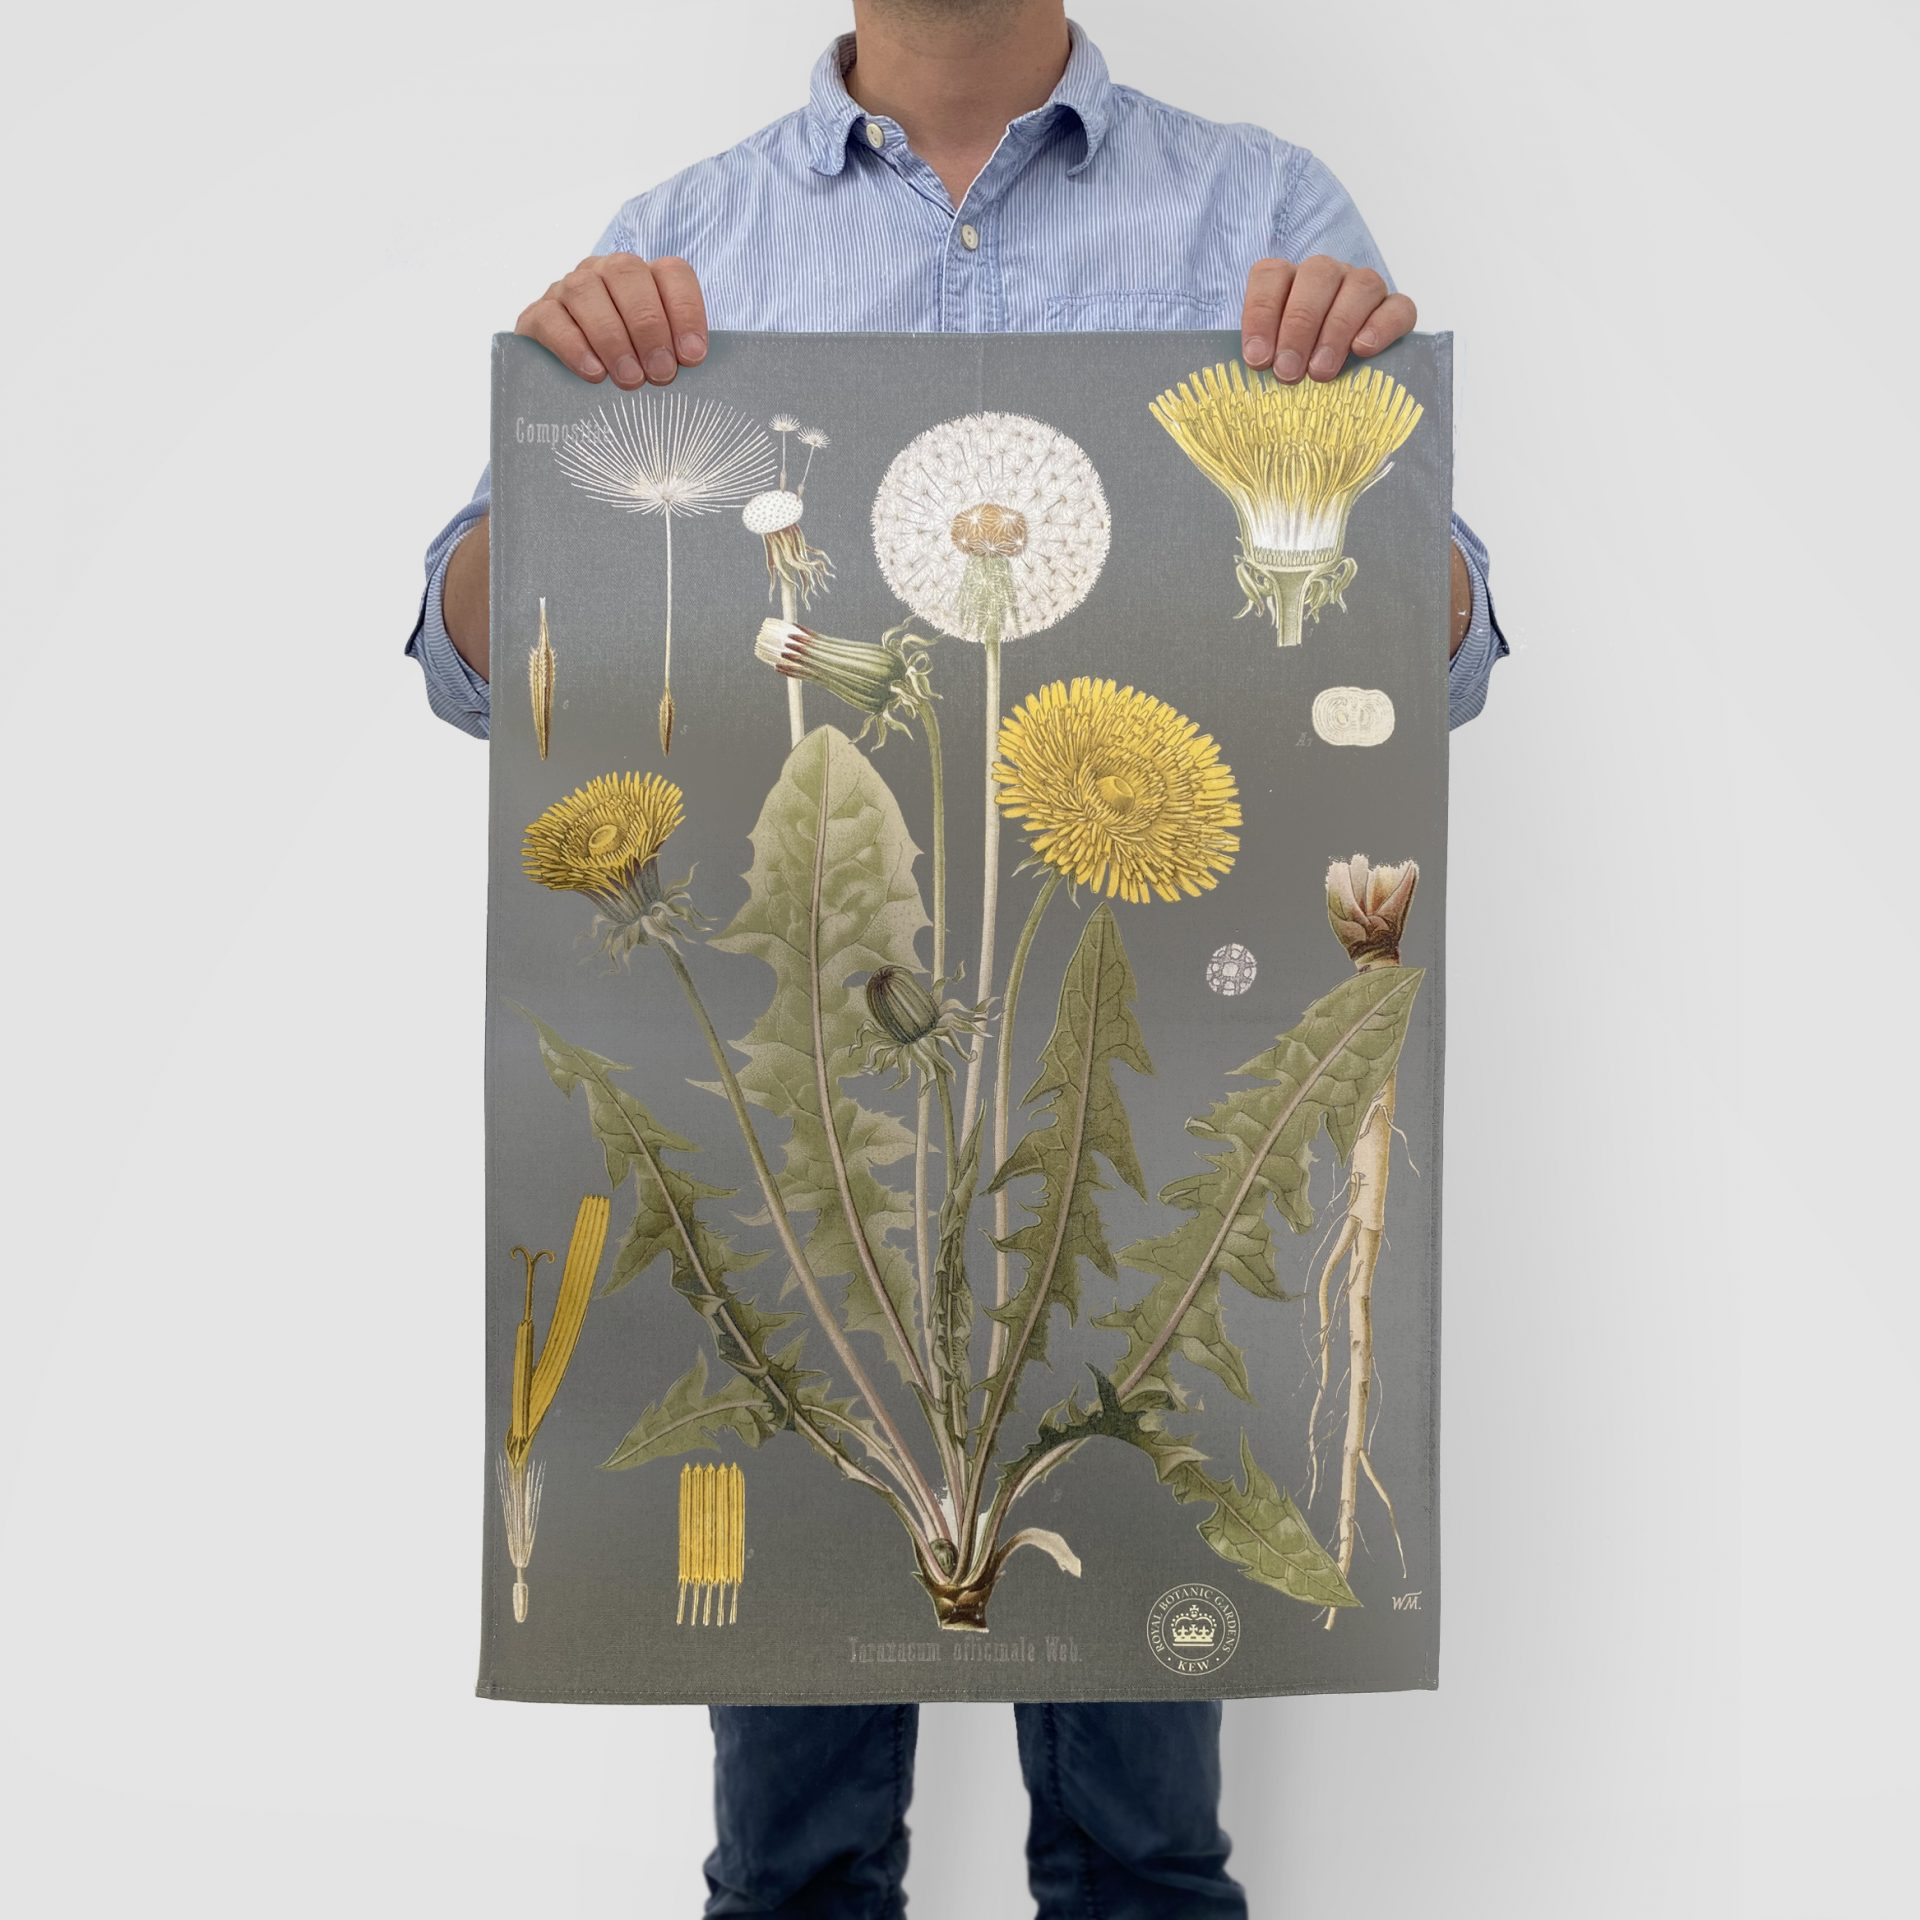 Printed tea towel for visitor attractions by Paul Bristow